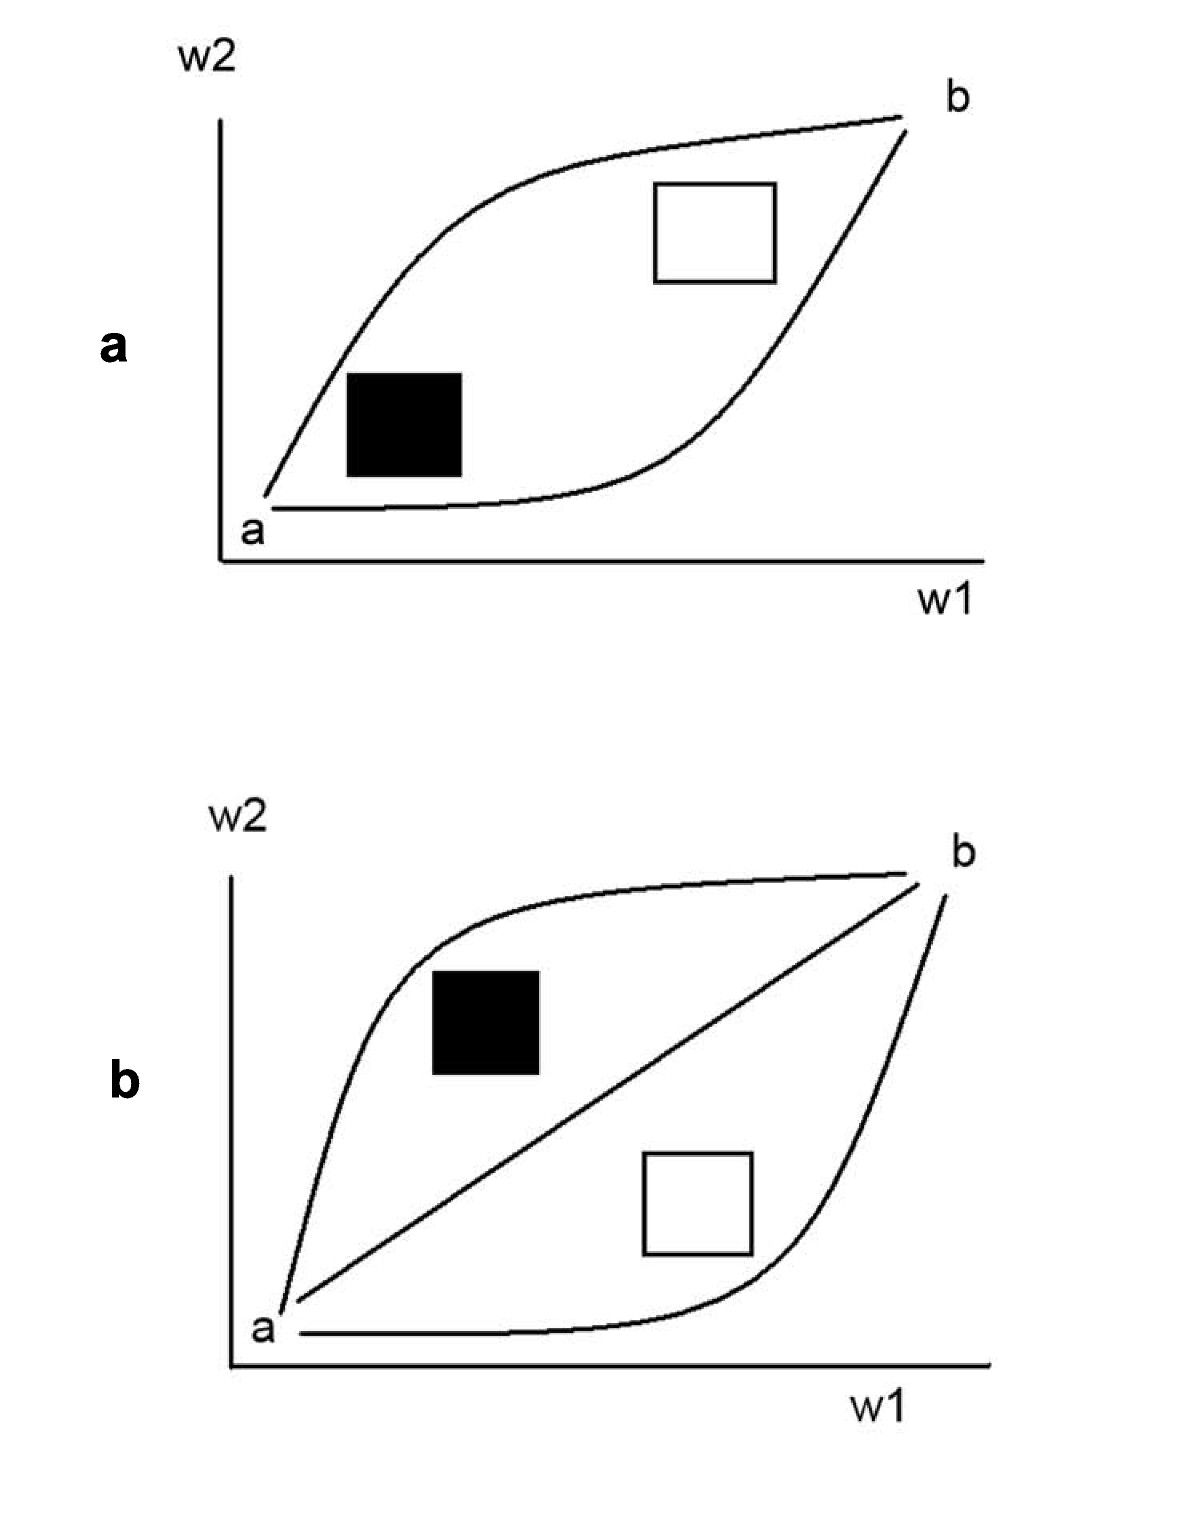 http://static-content.springer.com/image/art%3A10.1186%2F1742-4682-4-10/MediaObjects/12976_2006_Article_116_Fig3_HTML.jpg